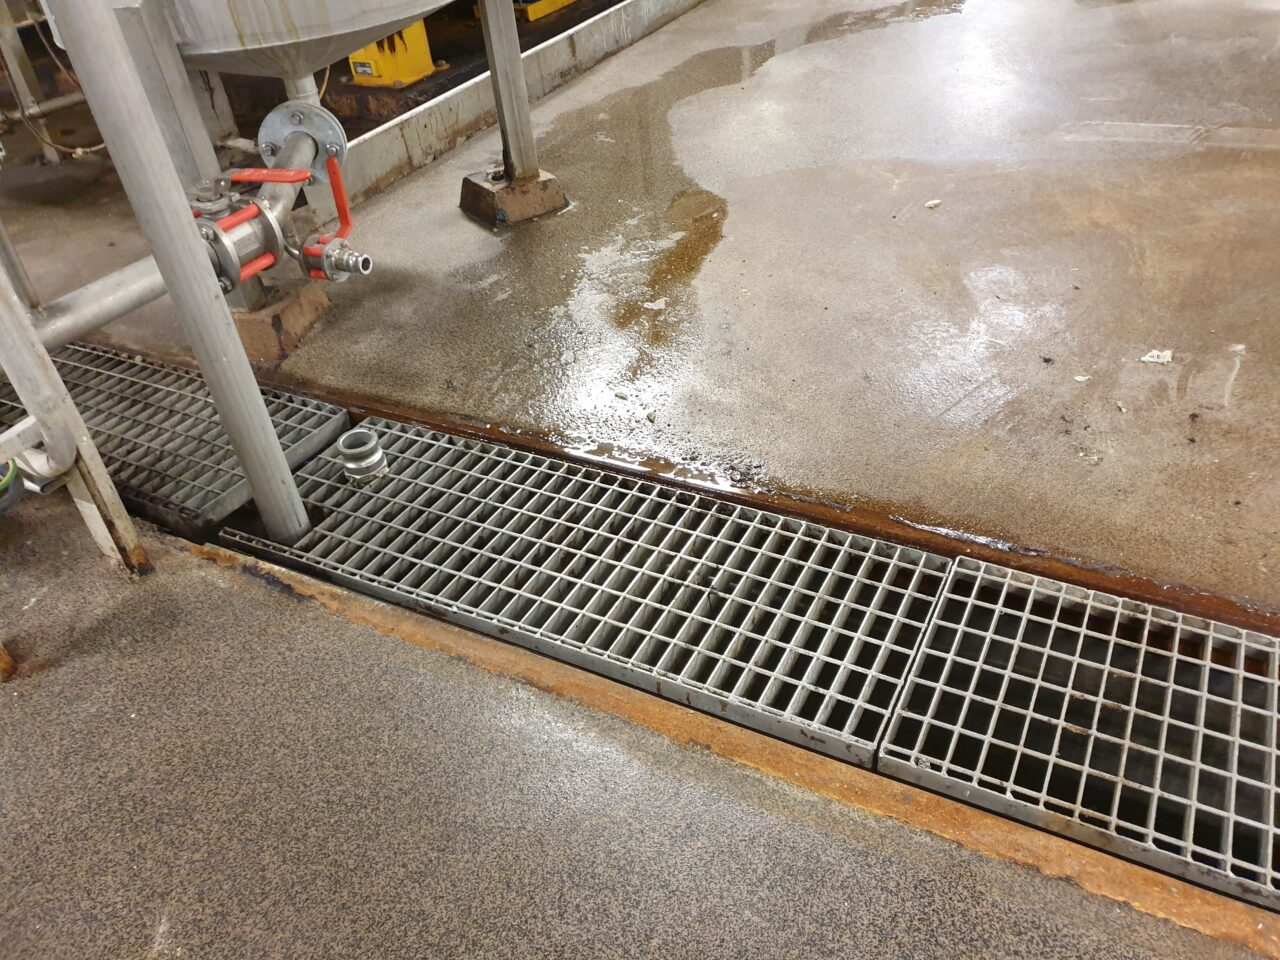 Deteriorated drain channels in need of chemical protectio